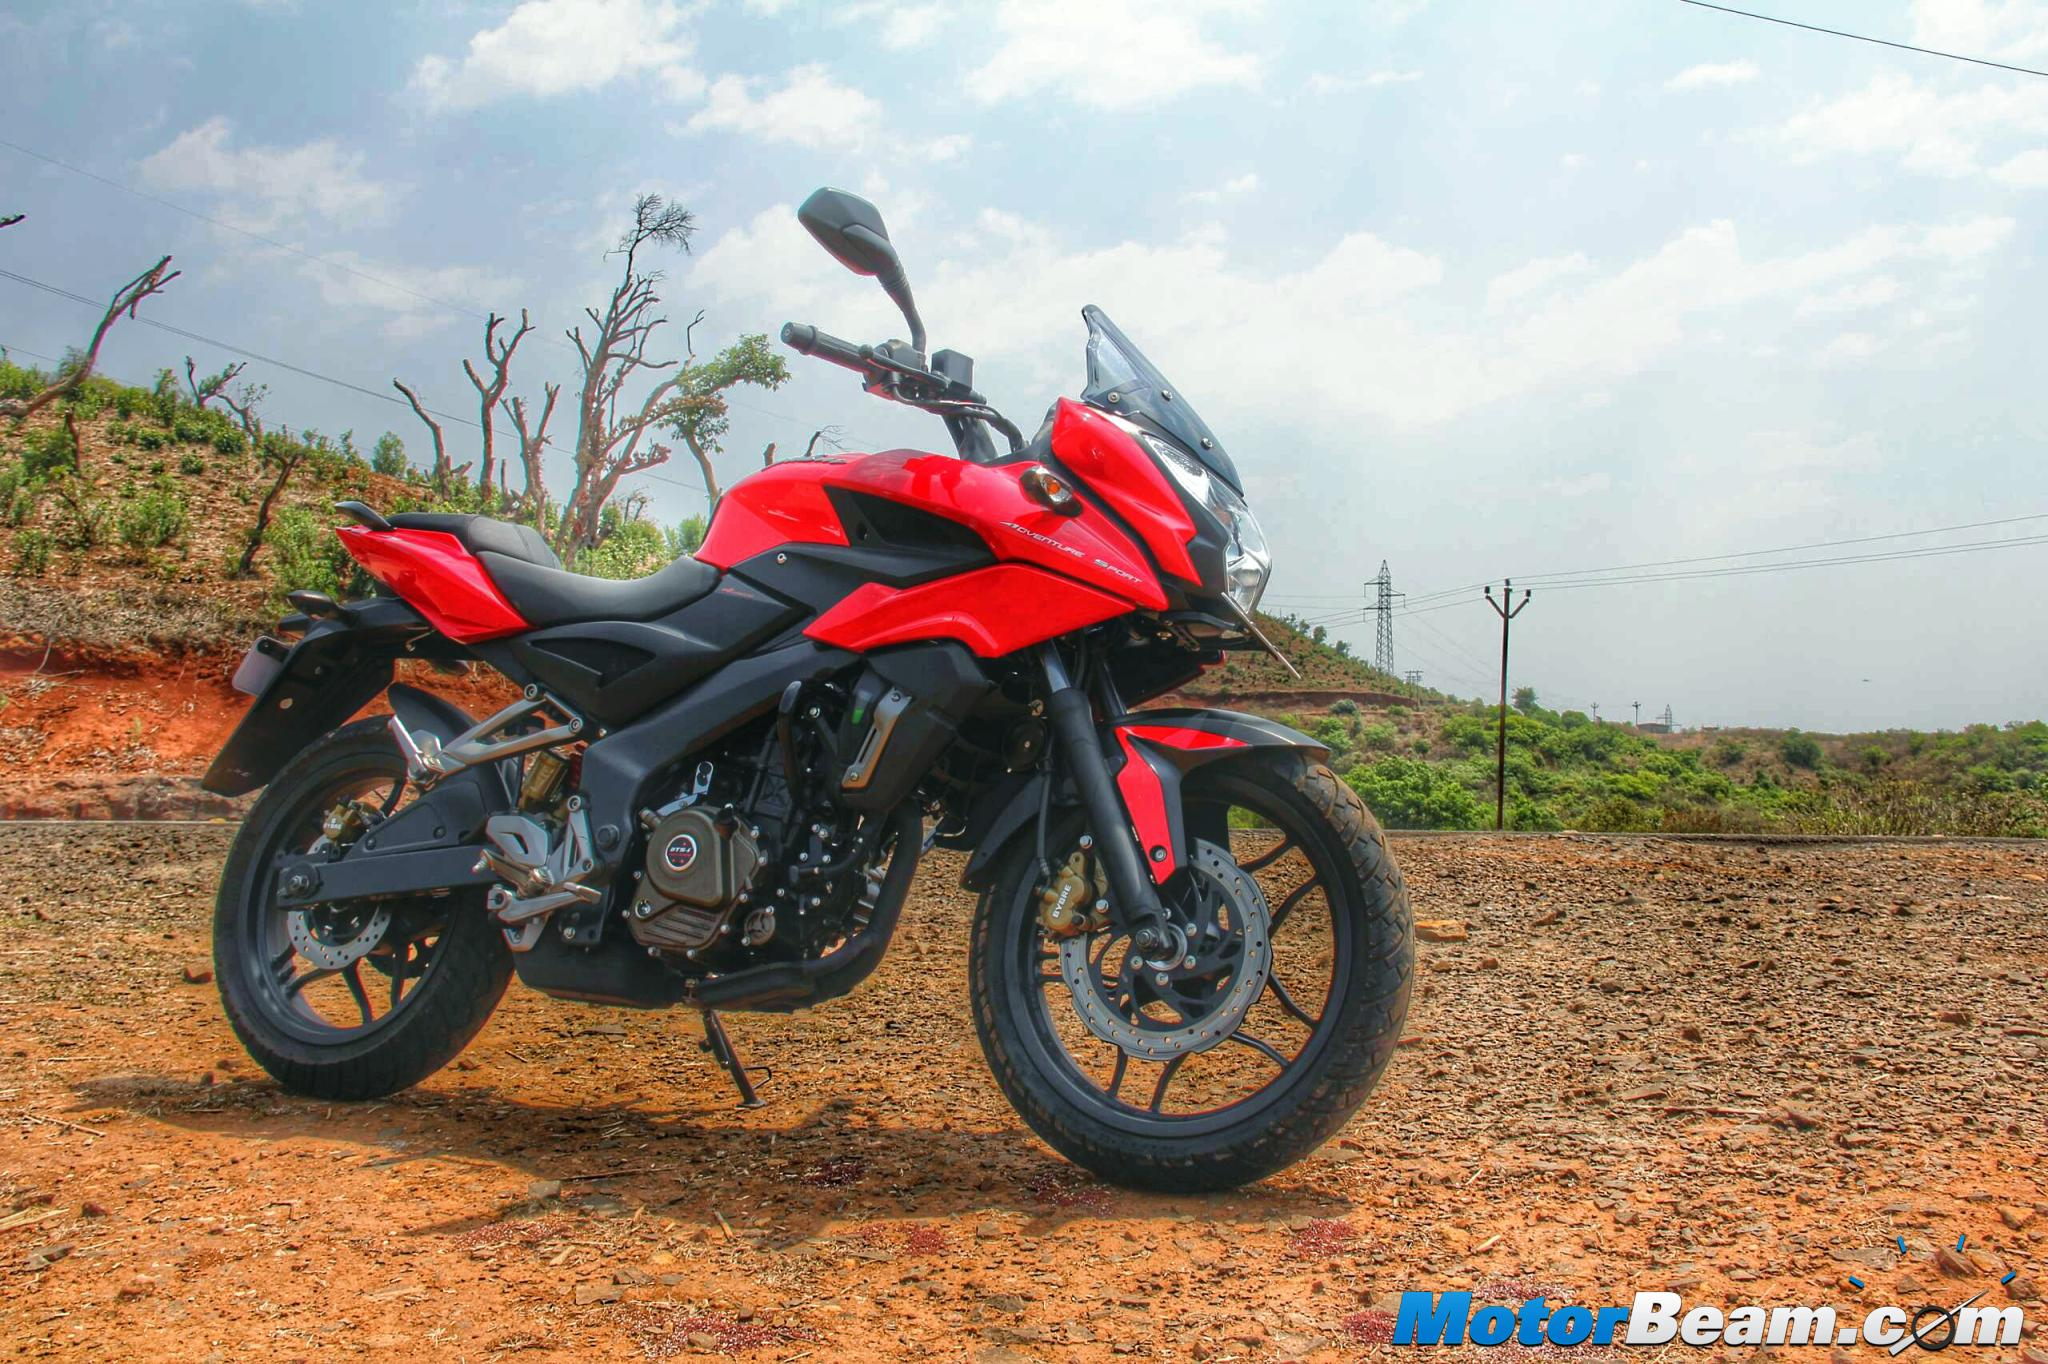 Pulsar 200 AS Test Ride Review